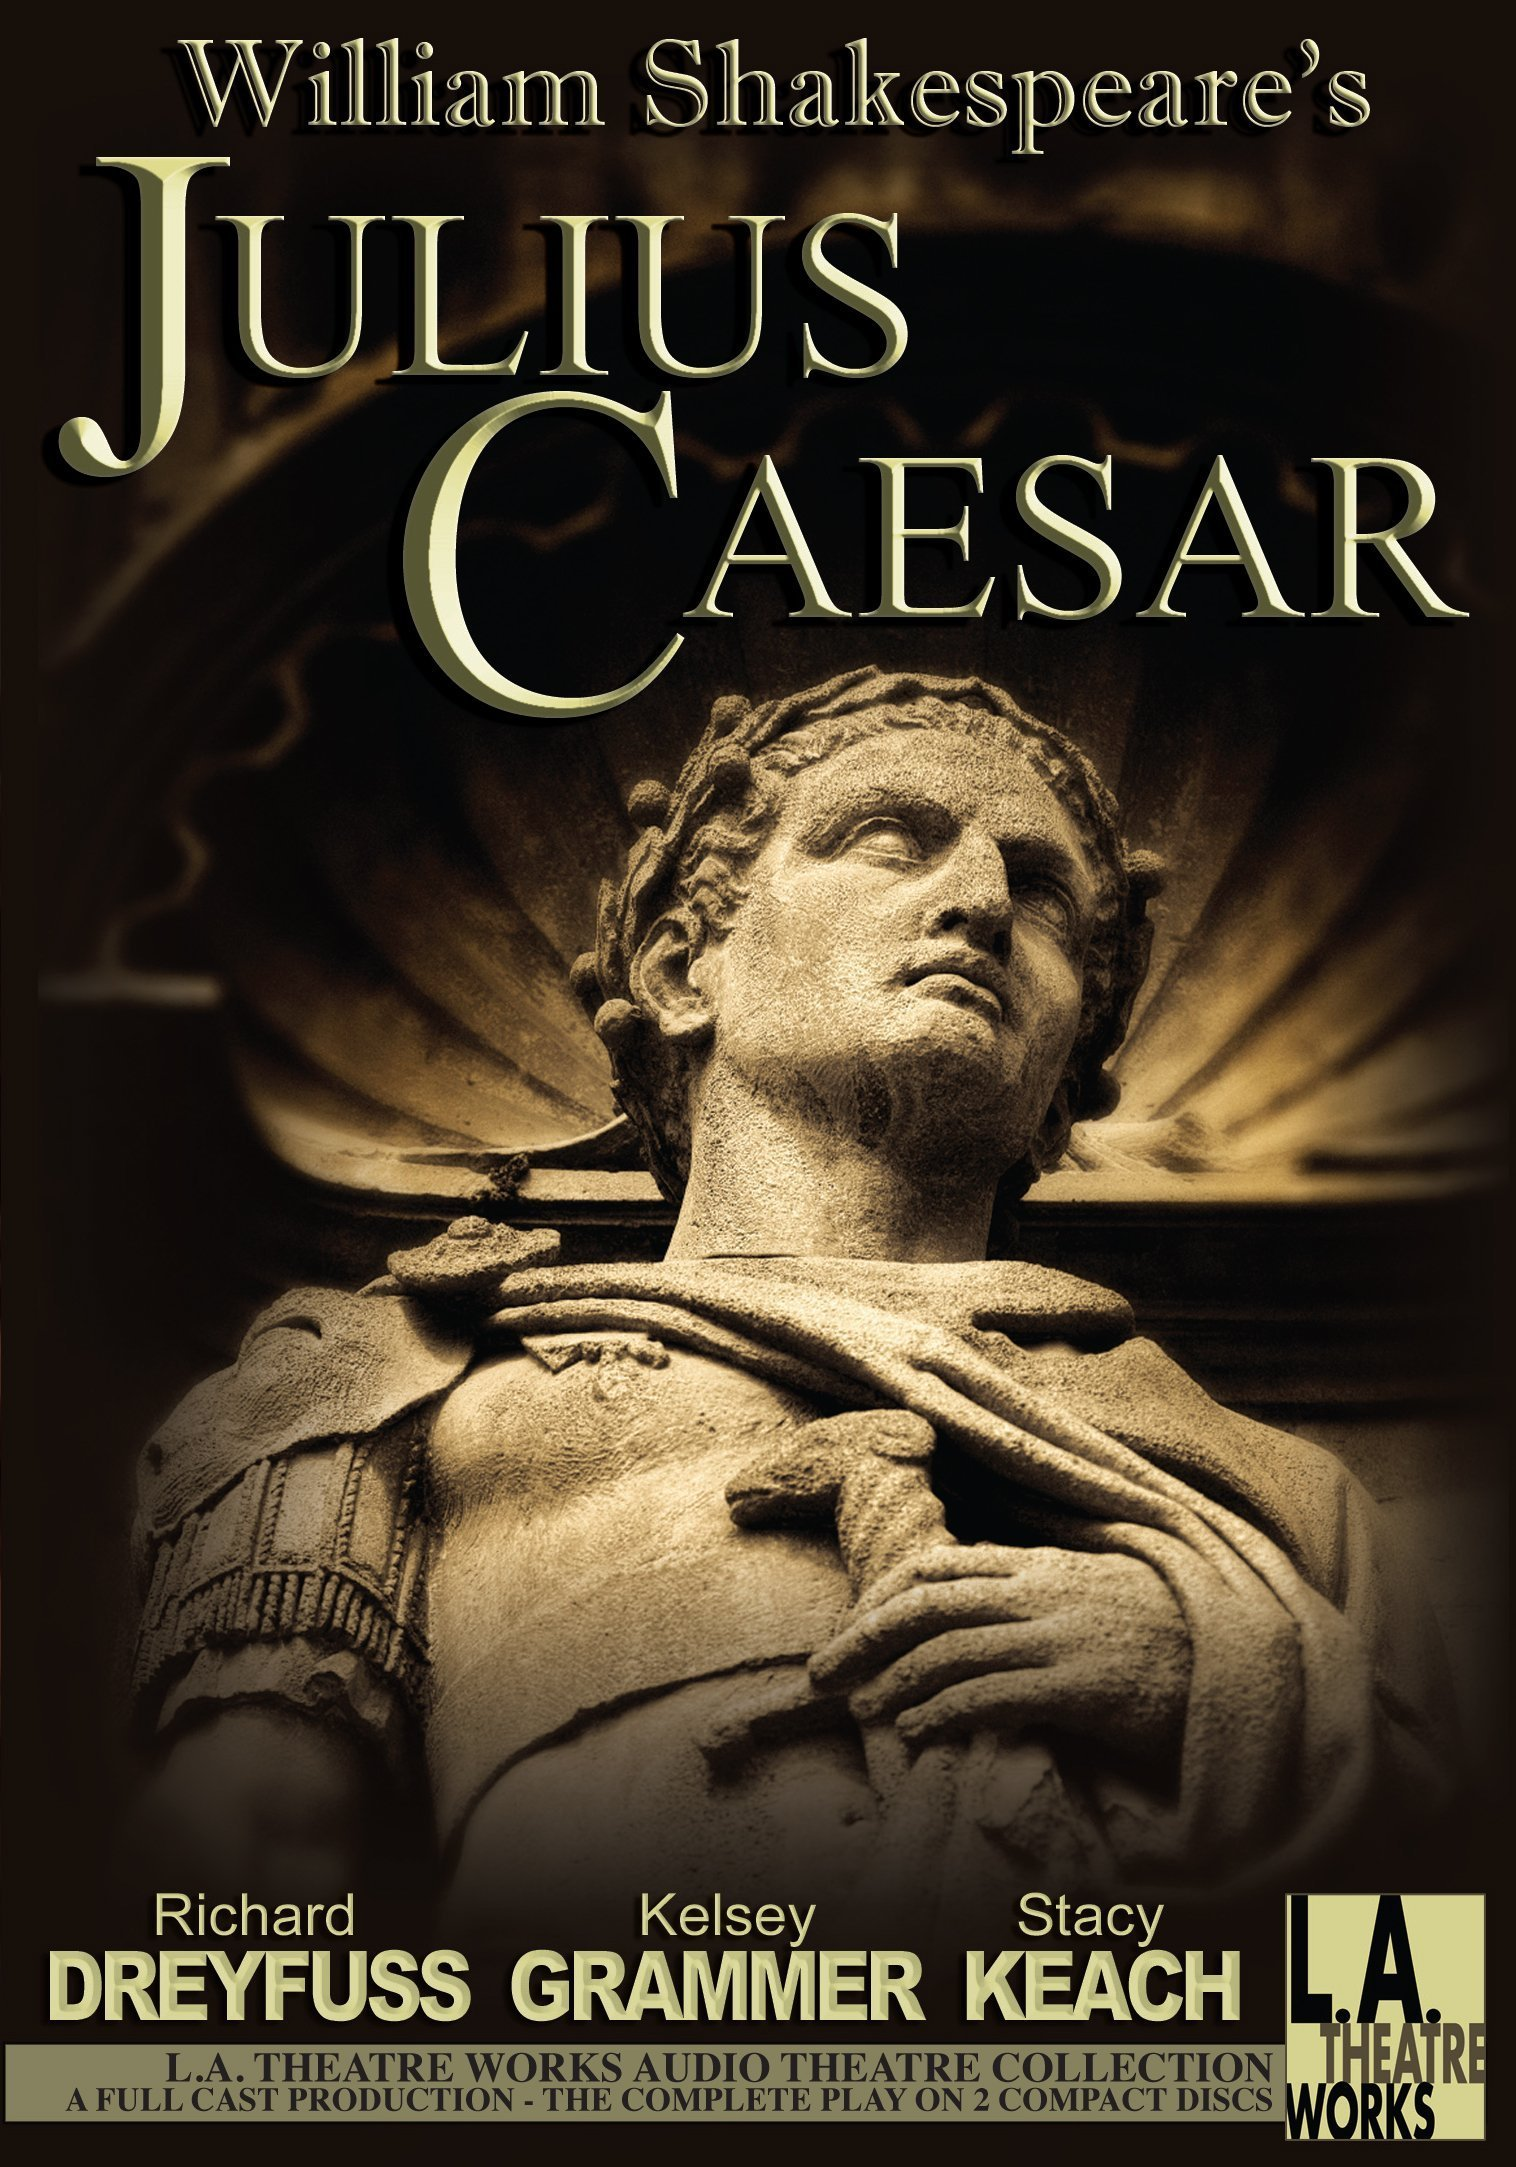 a play analysis of the tragedy of julius caesar by william shakespeare Act ii, scenes ii–iv act iii, scene i act iii, scenes ii–iii act iv, scenes i–ii act v, scenes i–iii act v, scenes iv–v characters character list brutus julius caesar antony main ideas plot analysis themes motifs symbols genre style point of view tone foreshadowing key facts is a republic better than a.